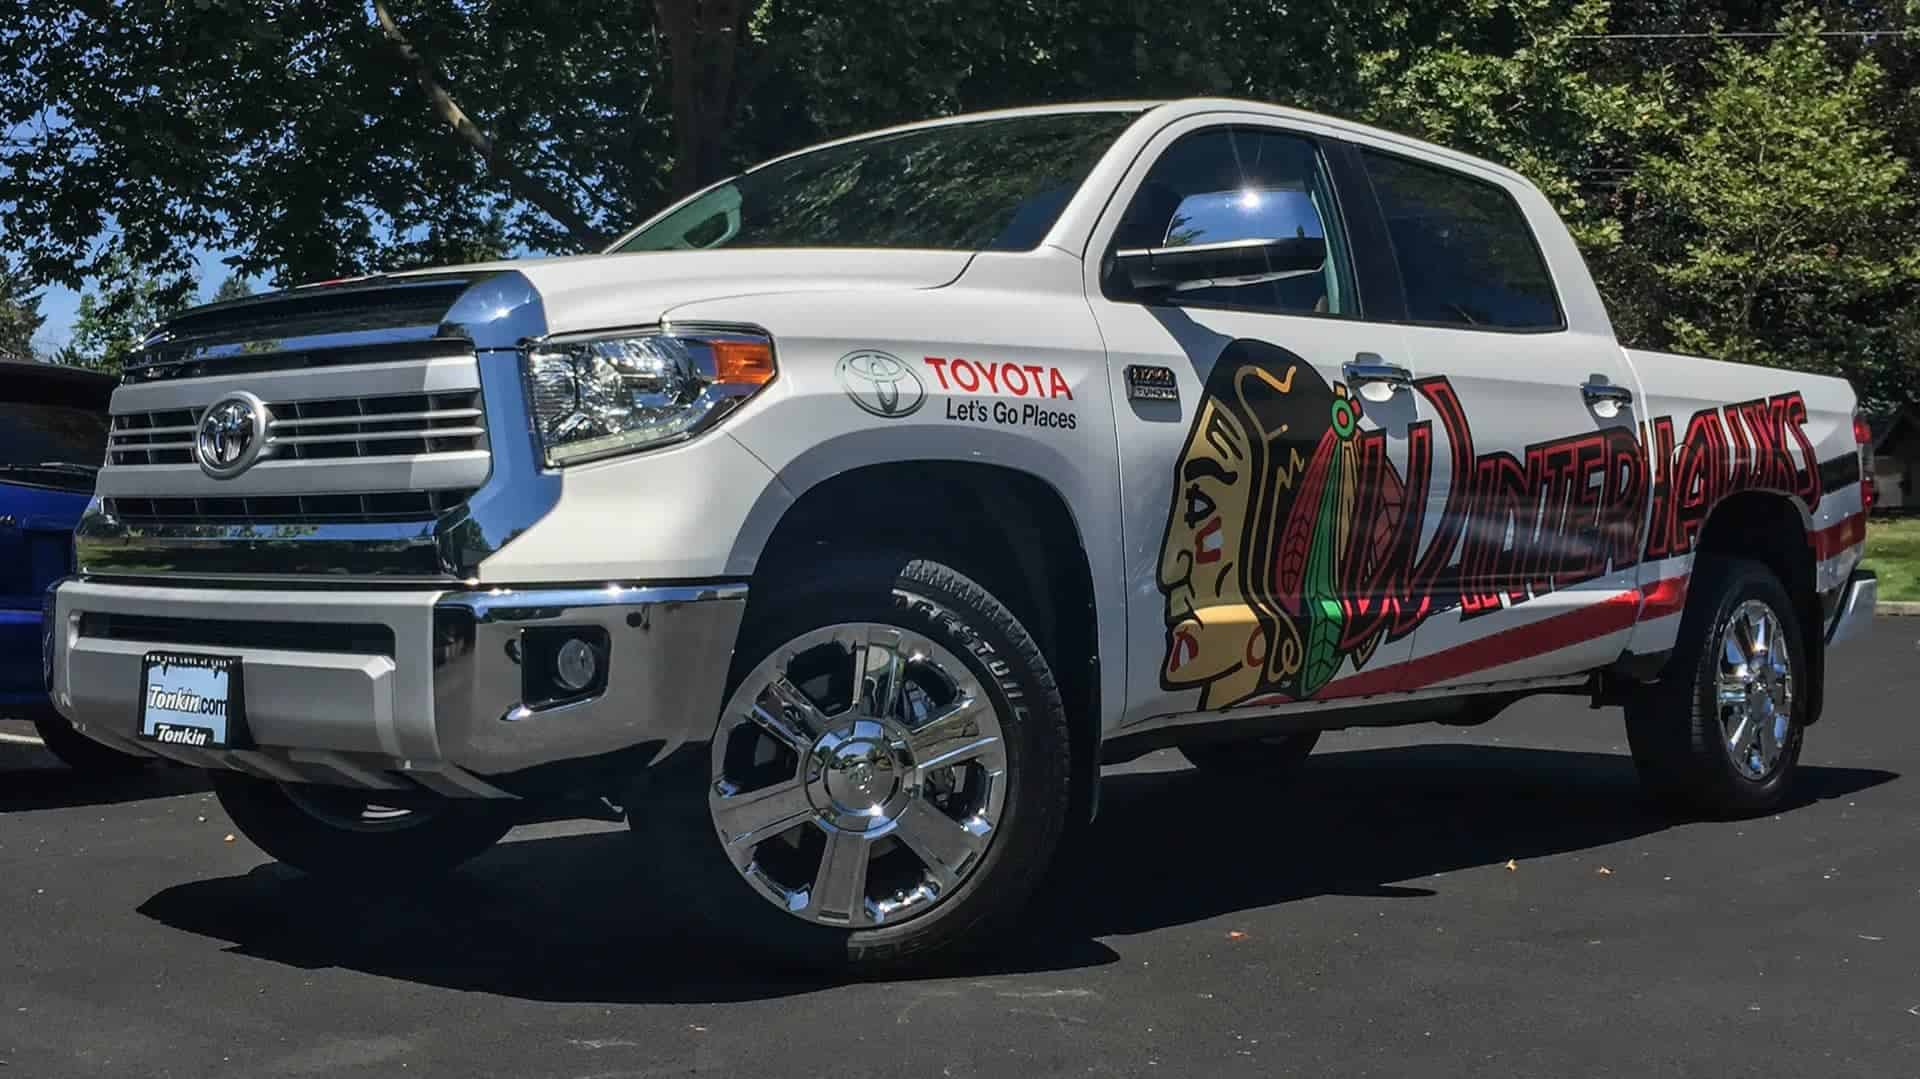 2016 Toyota Tundra Vehicle graphics for the Portland Winterhawks